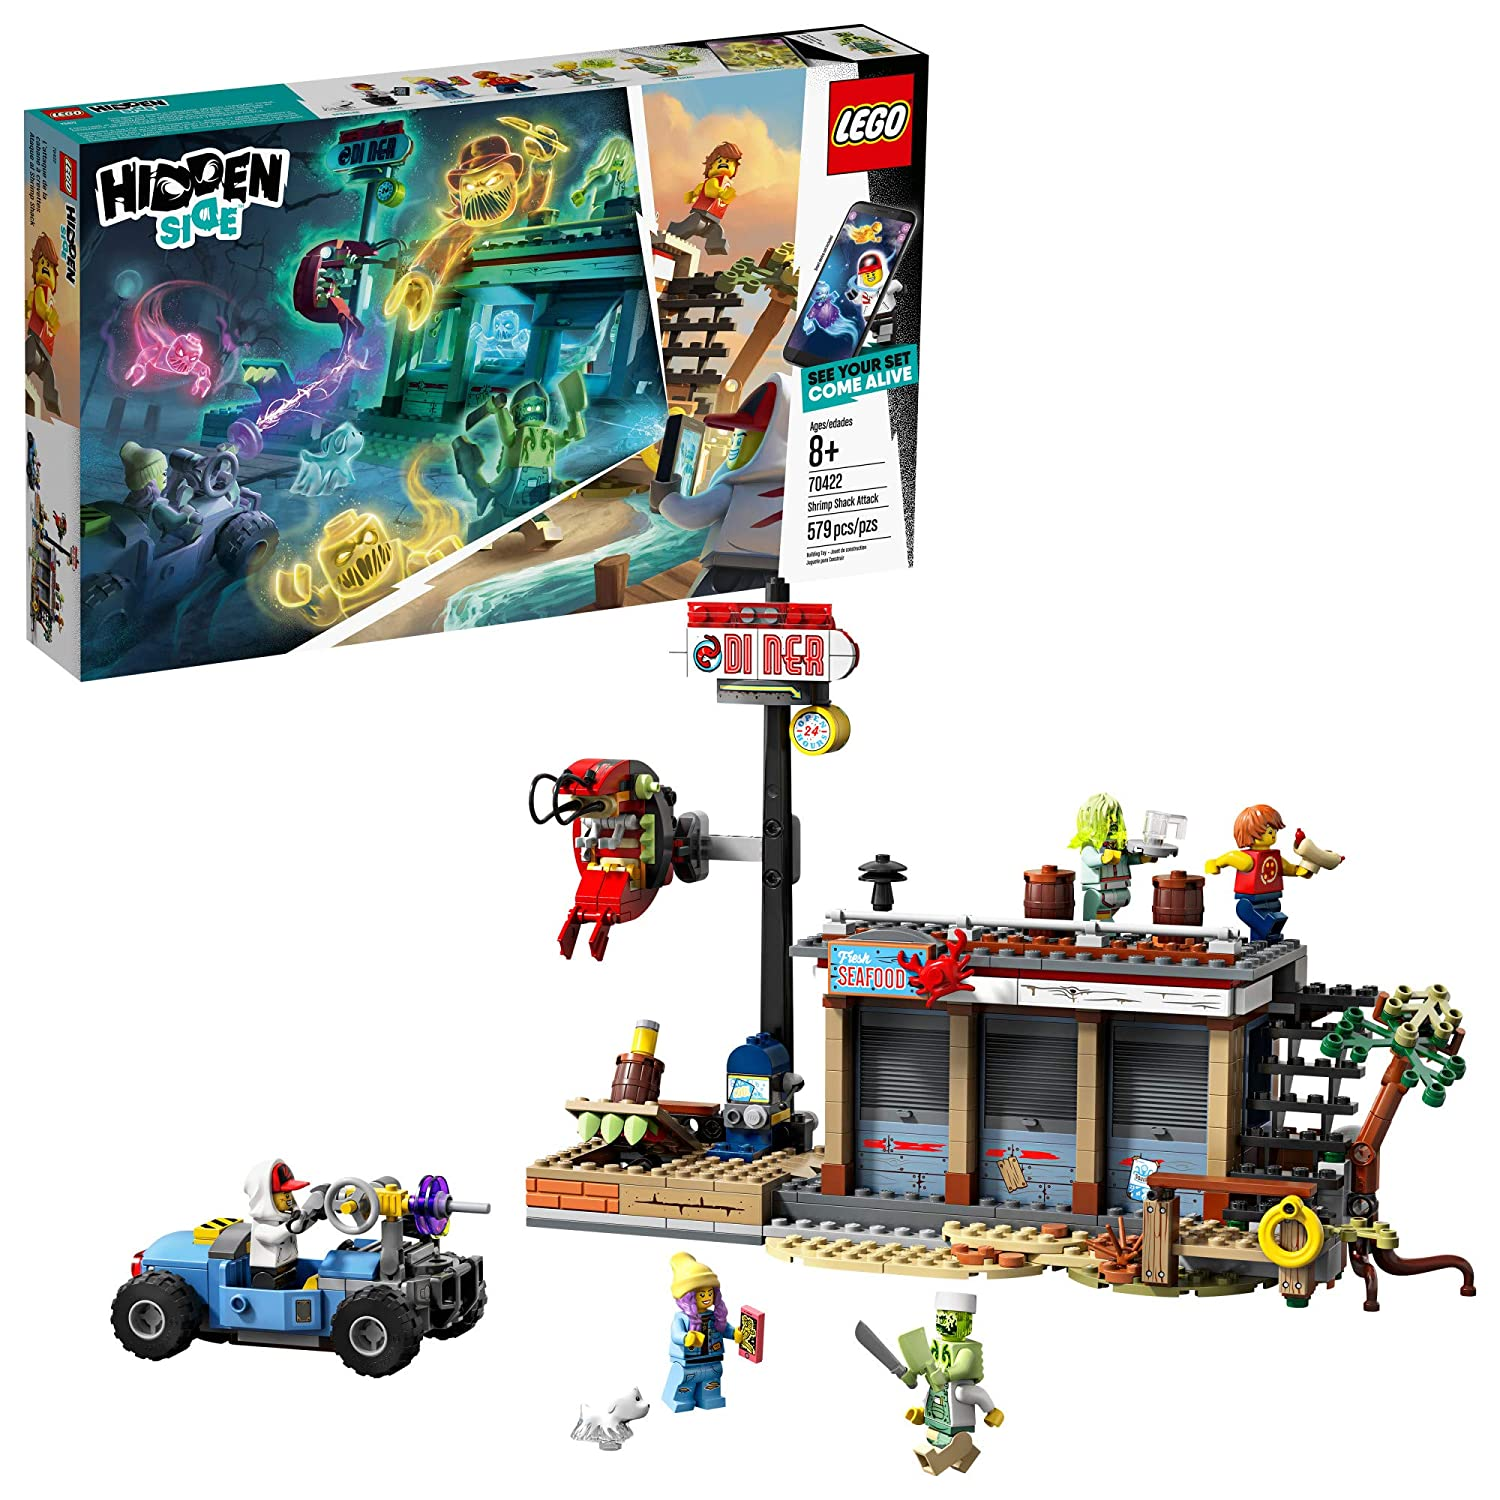 LEGO Hidden Side Shrimp Shack Attack 70422 Augmented Reality [AR] Building Set with Ghost Minifigures and Toy Car for Ghost Hunting, Tech Toy for Boys and Girls (579 Pieces)